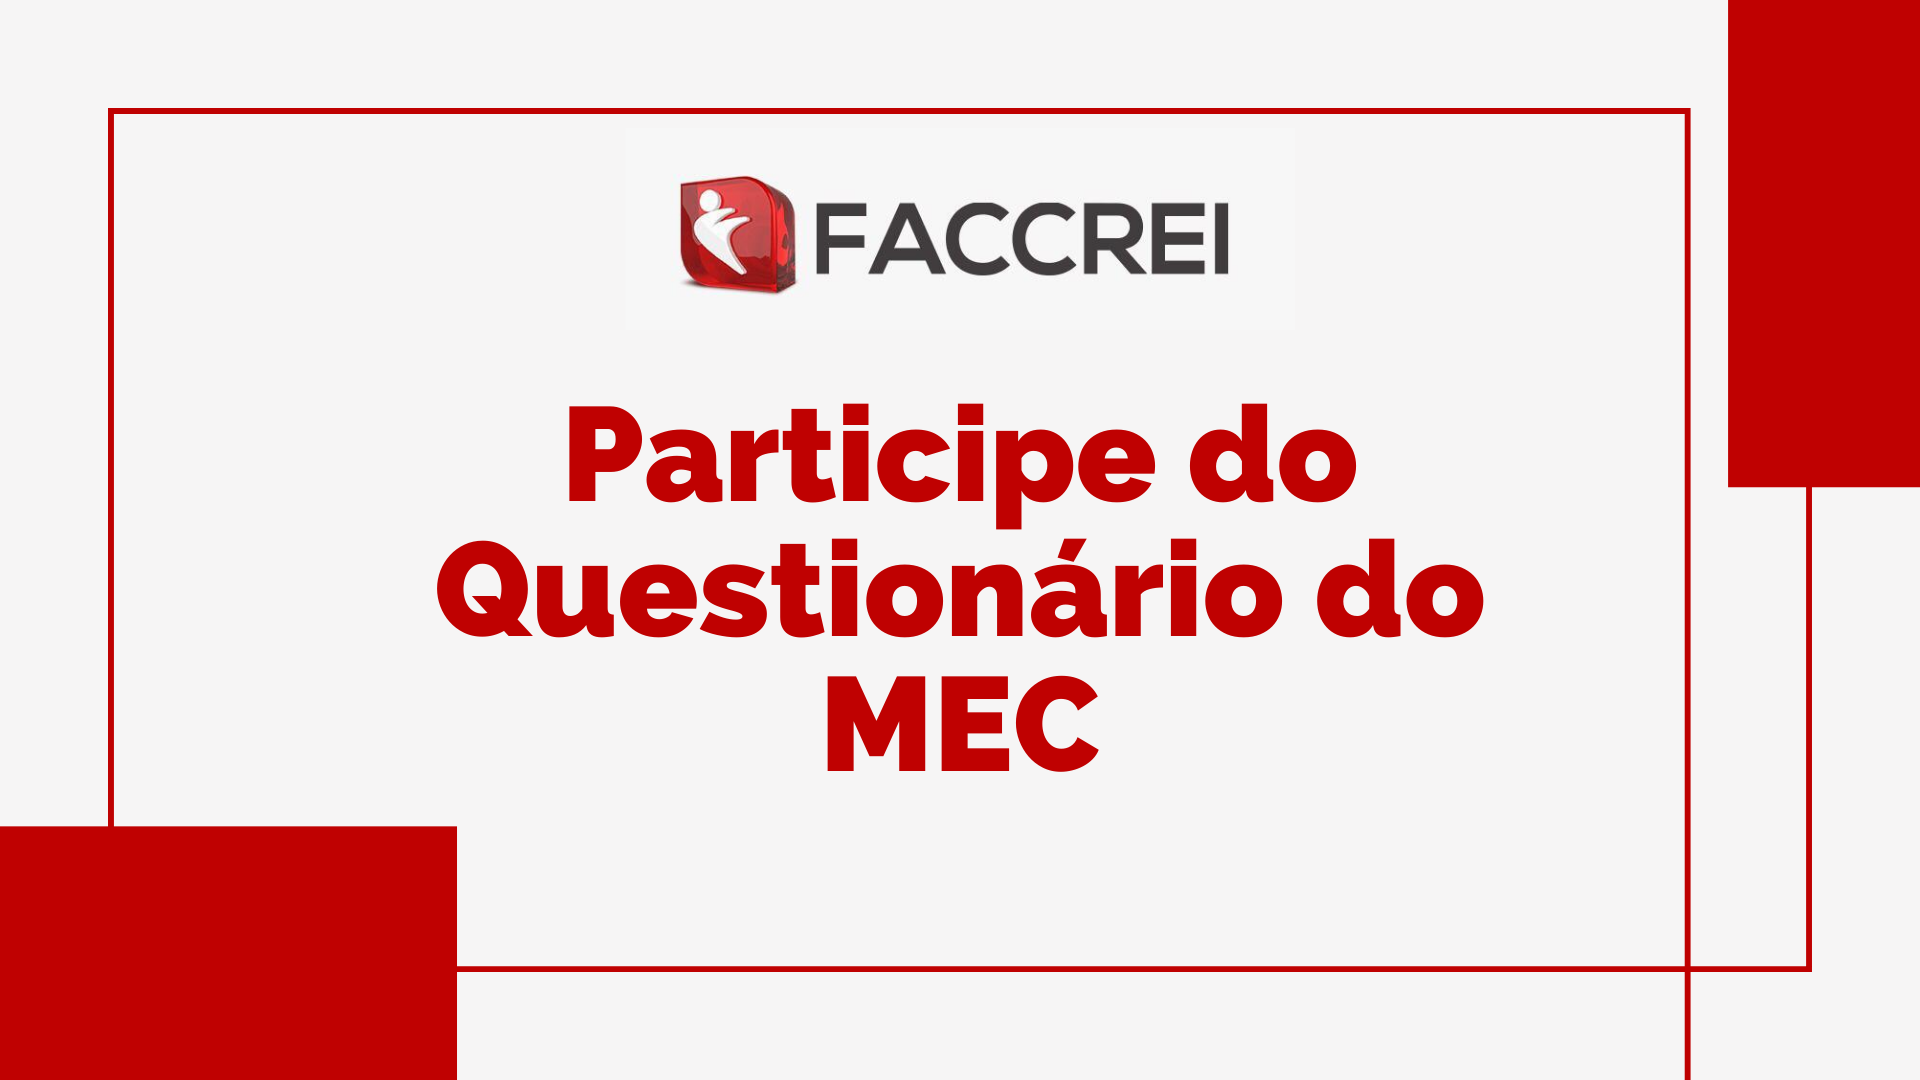 Participe do Questionário do MEC